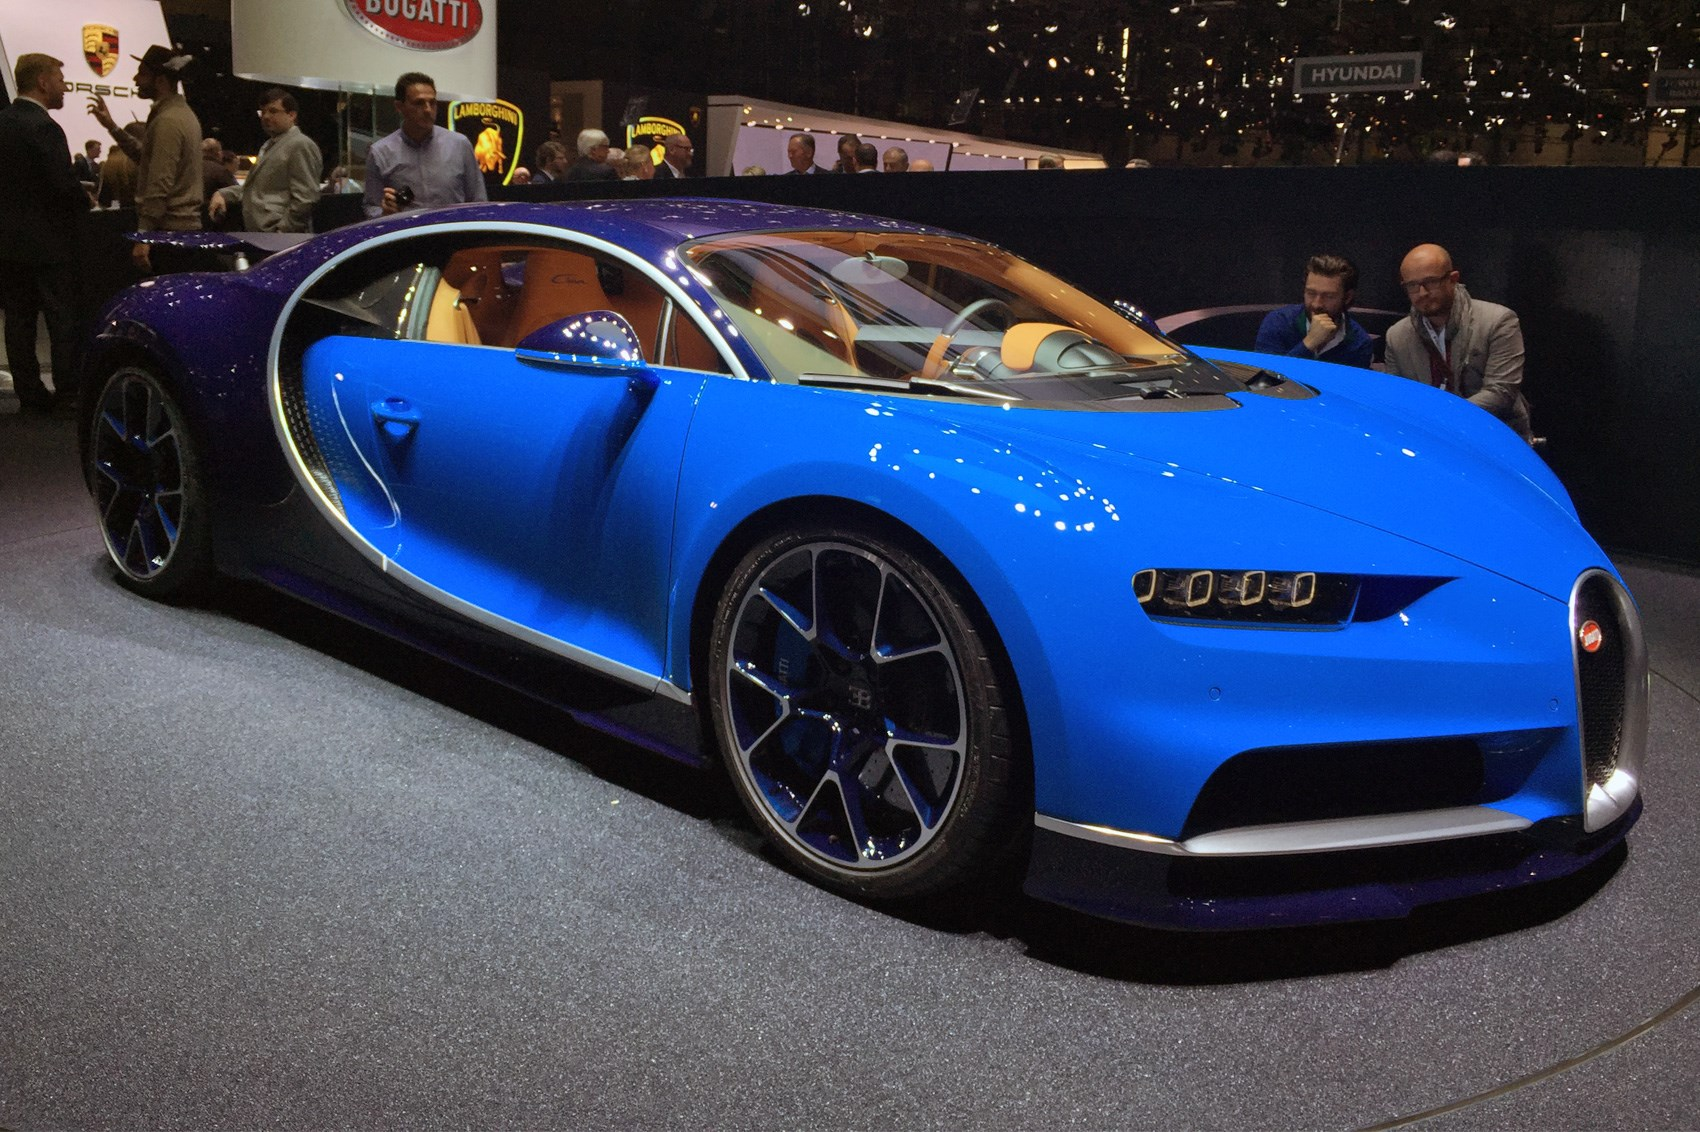 Ultrablogus  Sweet Bugatti Is Go New Chiron Name Confirmed Here At Geneva  By  With Exciting Bugatti Chiron Revealed At Geneva  The World Has A New Fastest Production Car With Captivating  Ford Fusion Interior Door Handle Also  Tahoe Interior In Addition Car Interior Cleaner And  Yukon Interior As Well As  Honda Cr V Ex Interior Additionally  Ford Explorer Sport Trac Interior From Carmagazinecouk With Ultrablogus  Exciting Bugatti Is Go New Chiron Name Confirmed Here At Geneva  By  With Captivating Bugatti Chiron Revealed At Geneva  The World Has A New Fastest Production Car And Sweet  Ford Fusion Interior Door Handle Also  Tahoe Interior In Addition Car Interior Cleaner From Carmagazinecouk